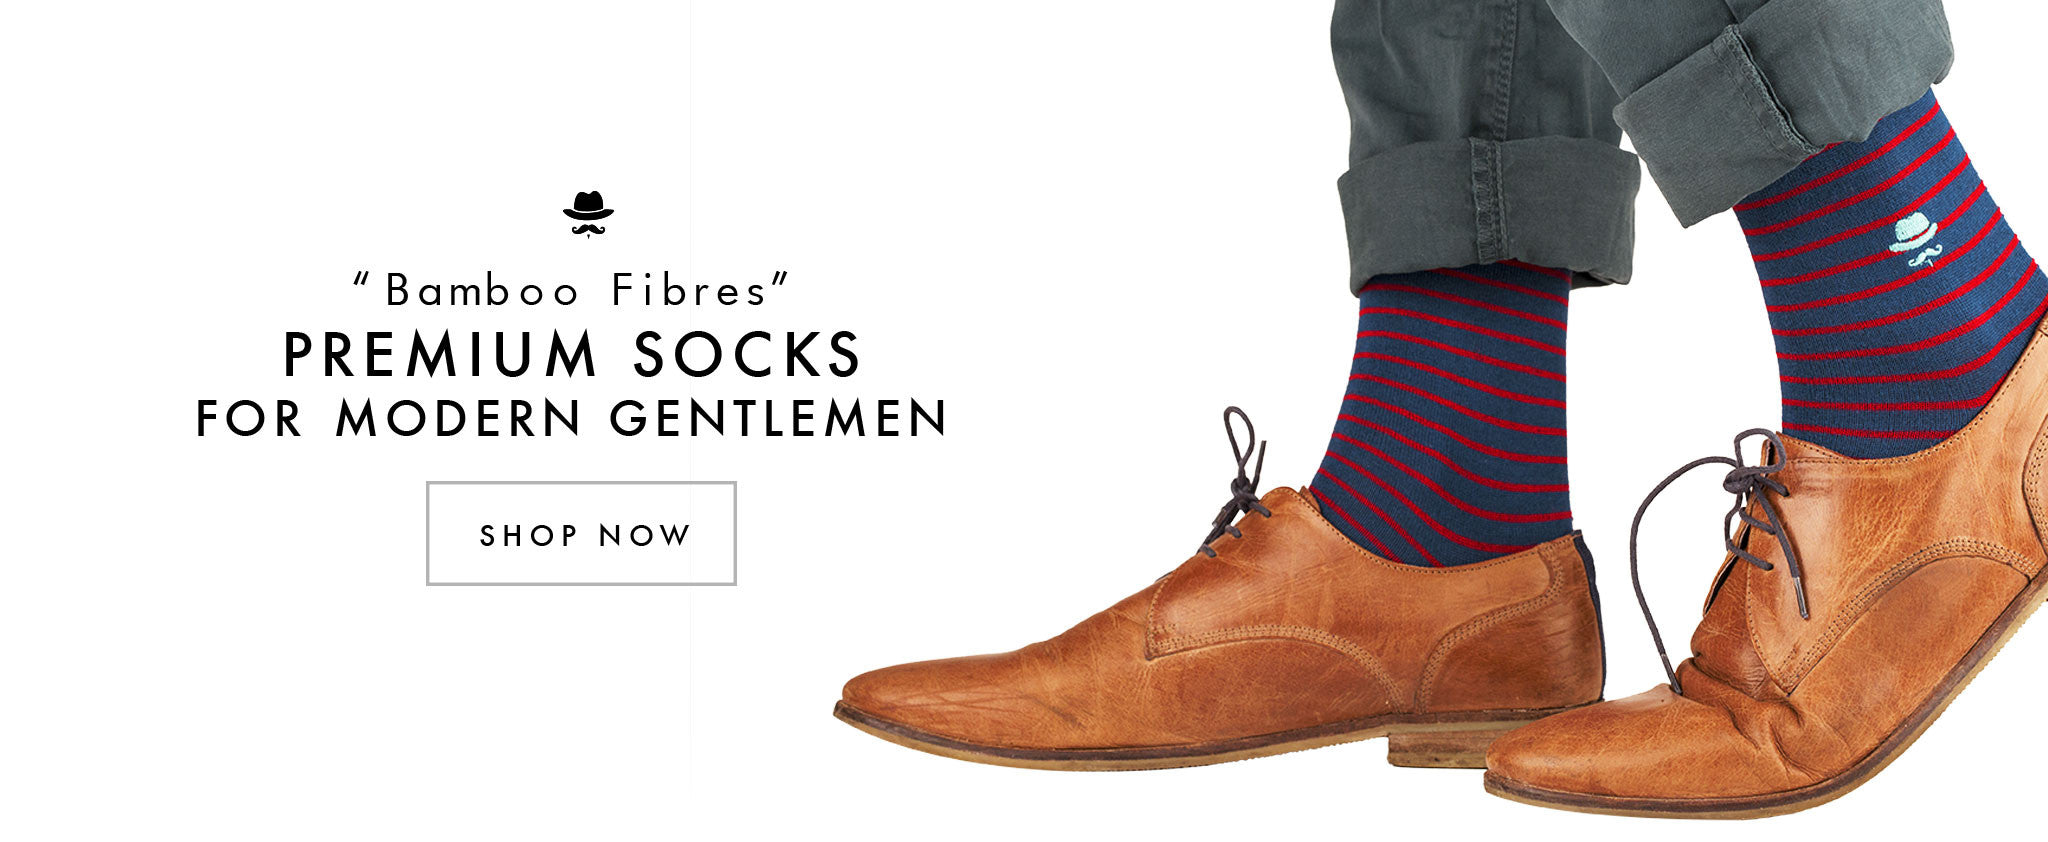 Oscar Socks - Premium Socks for Modern Gentlemen